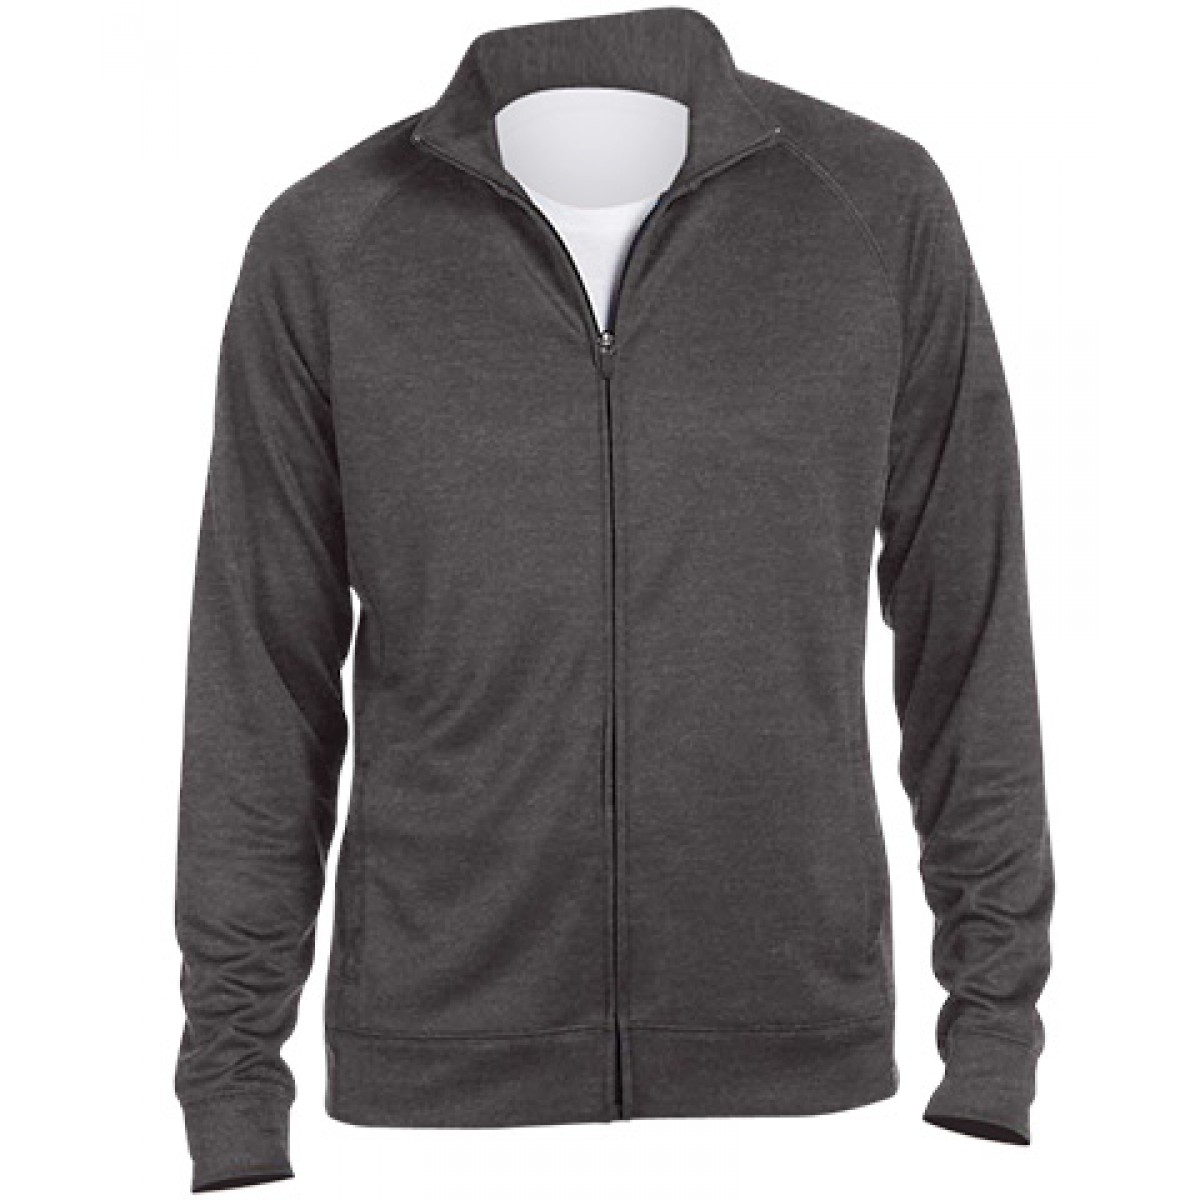 Men's Lightweight Sports Jacket-Sports Grey-M